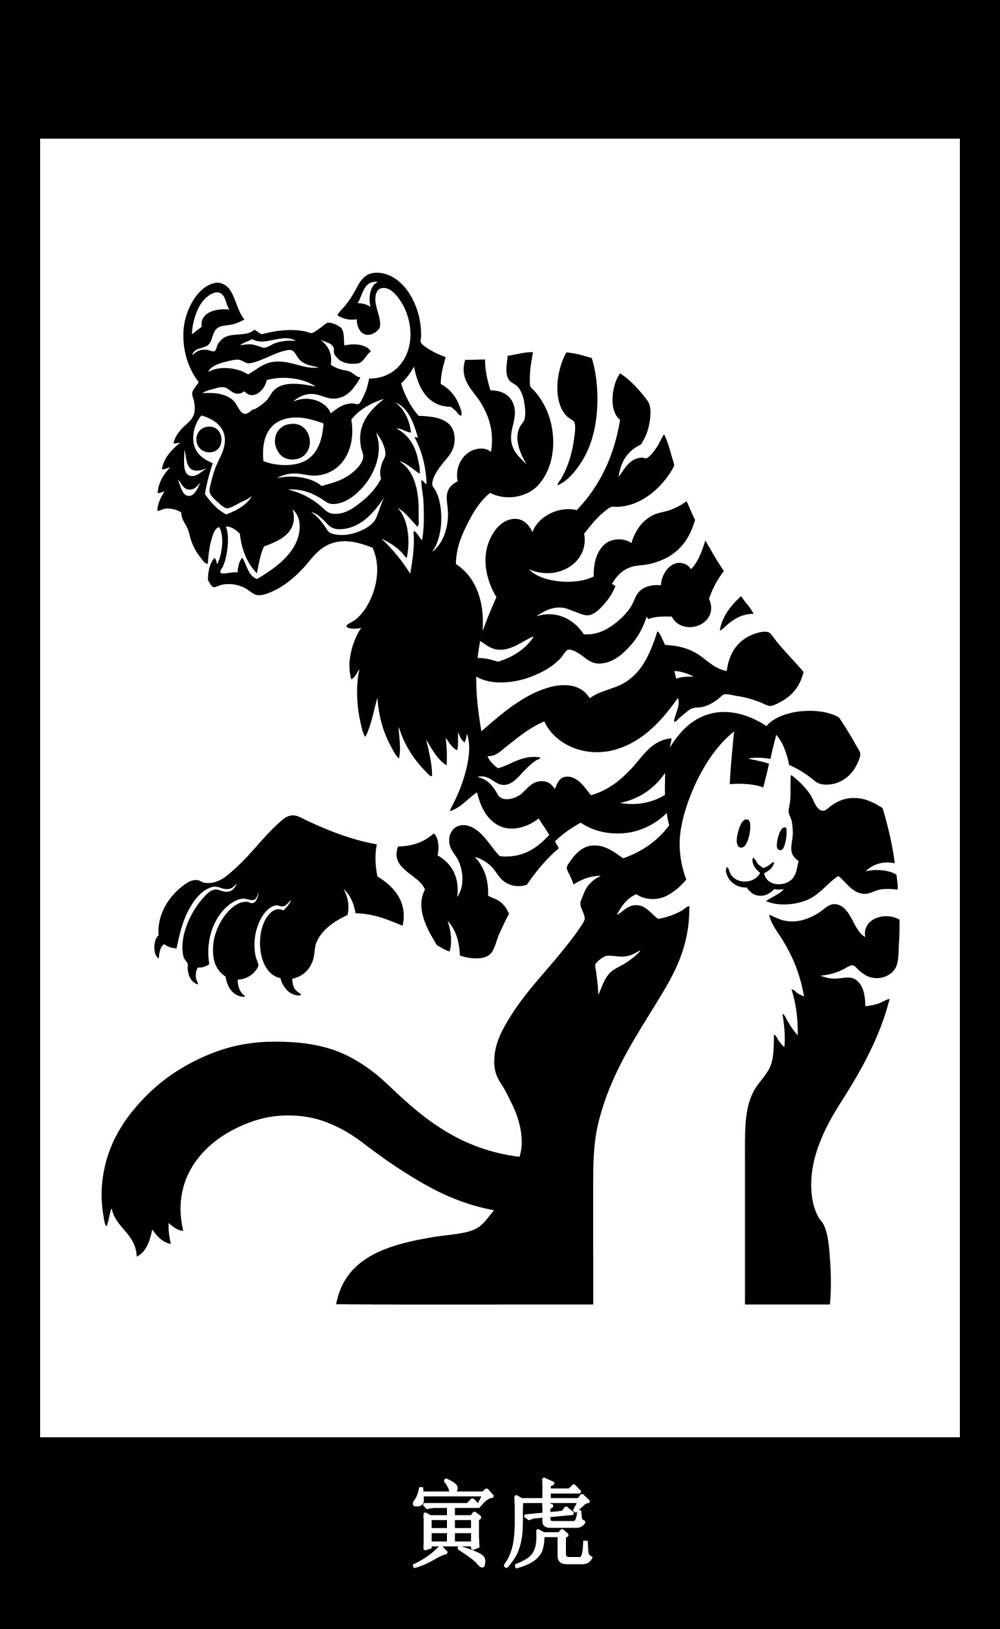 03 - Tiger - SCP-247 - A Harmless Kitten